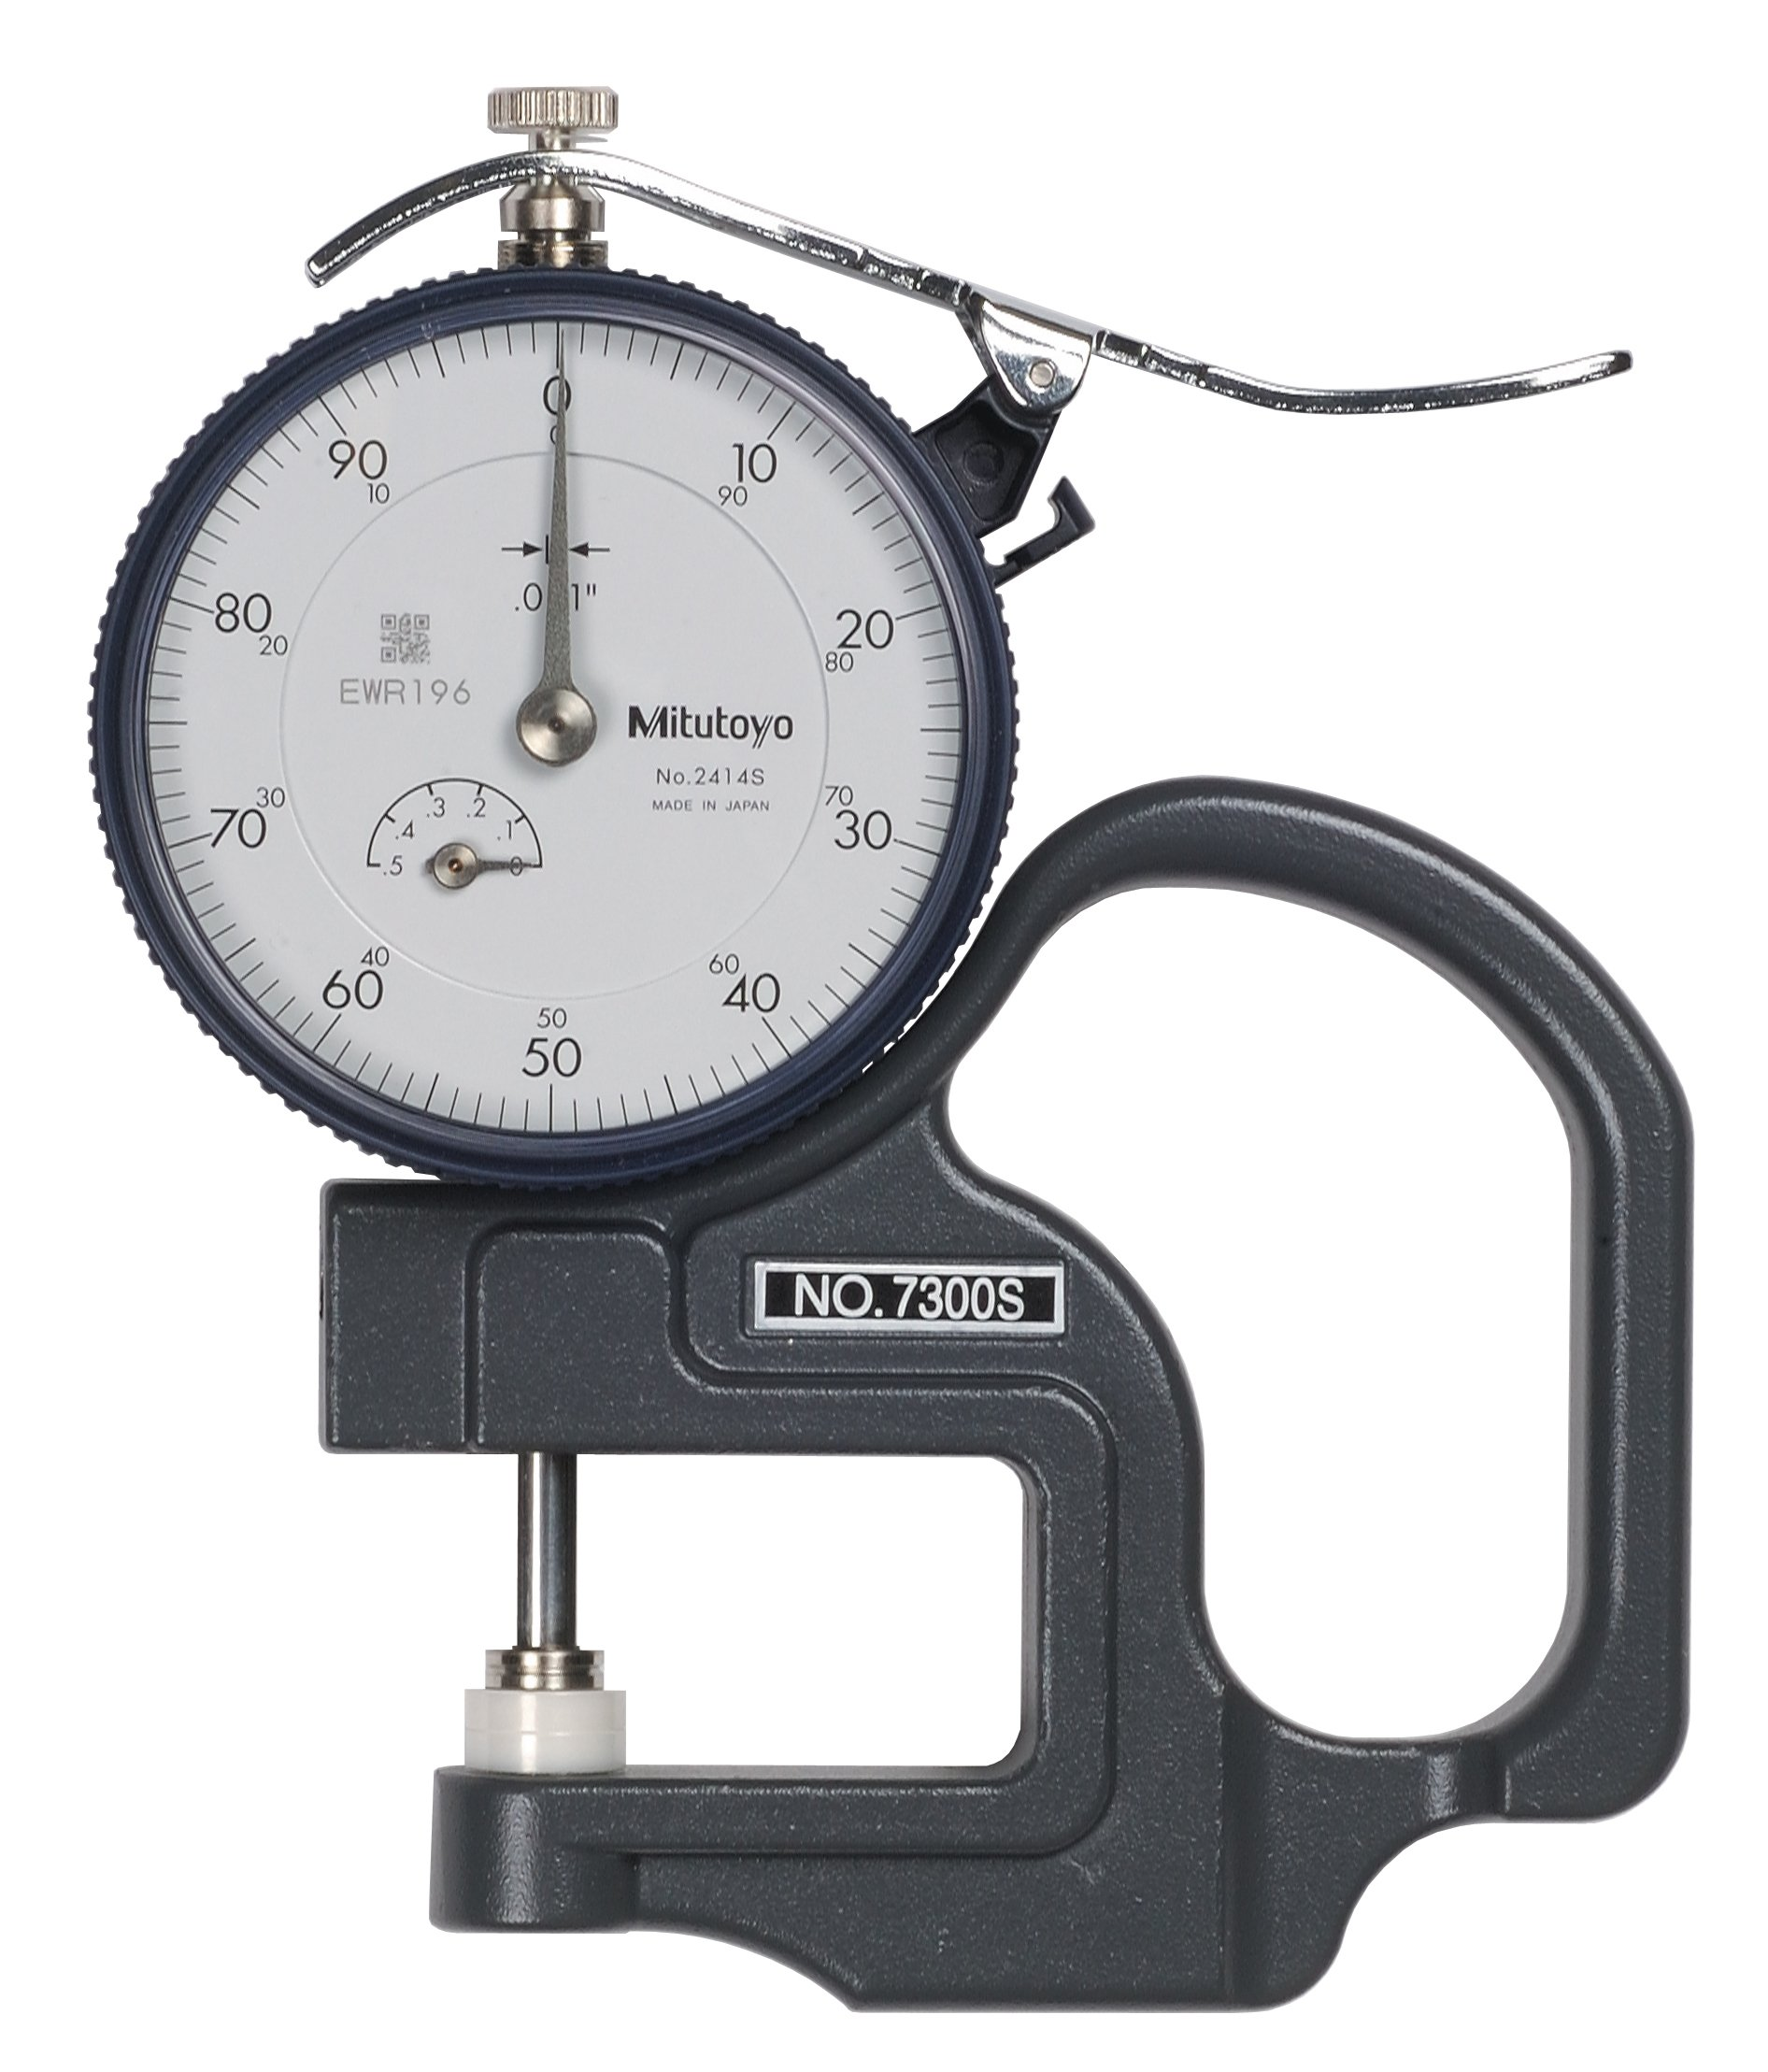 Individual Certified Calibration Chart ASHCROFT Duralife Type 1009 Stainless Steel Case Dry Filled Pressure Gauge Stainless Steel Tube and Bronze Socket 30 Hg Vac Pressure Range 2.5 Dial Size 1//4 NPT Lower Back Connection 2.5 Dial Size